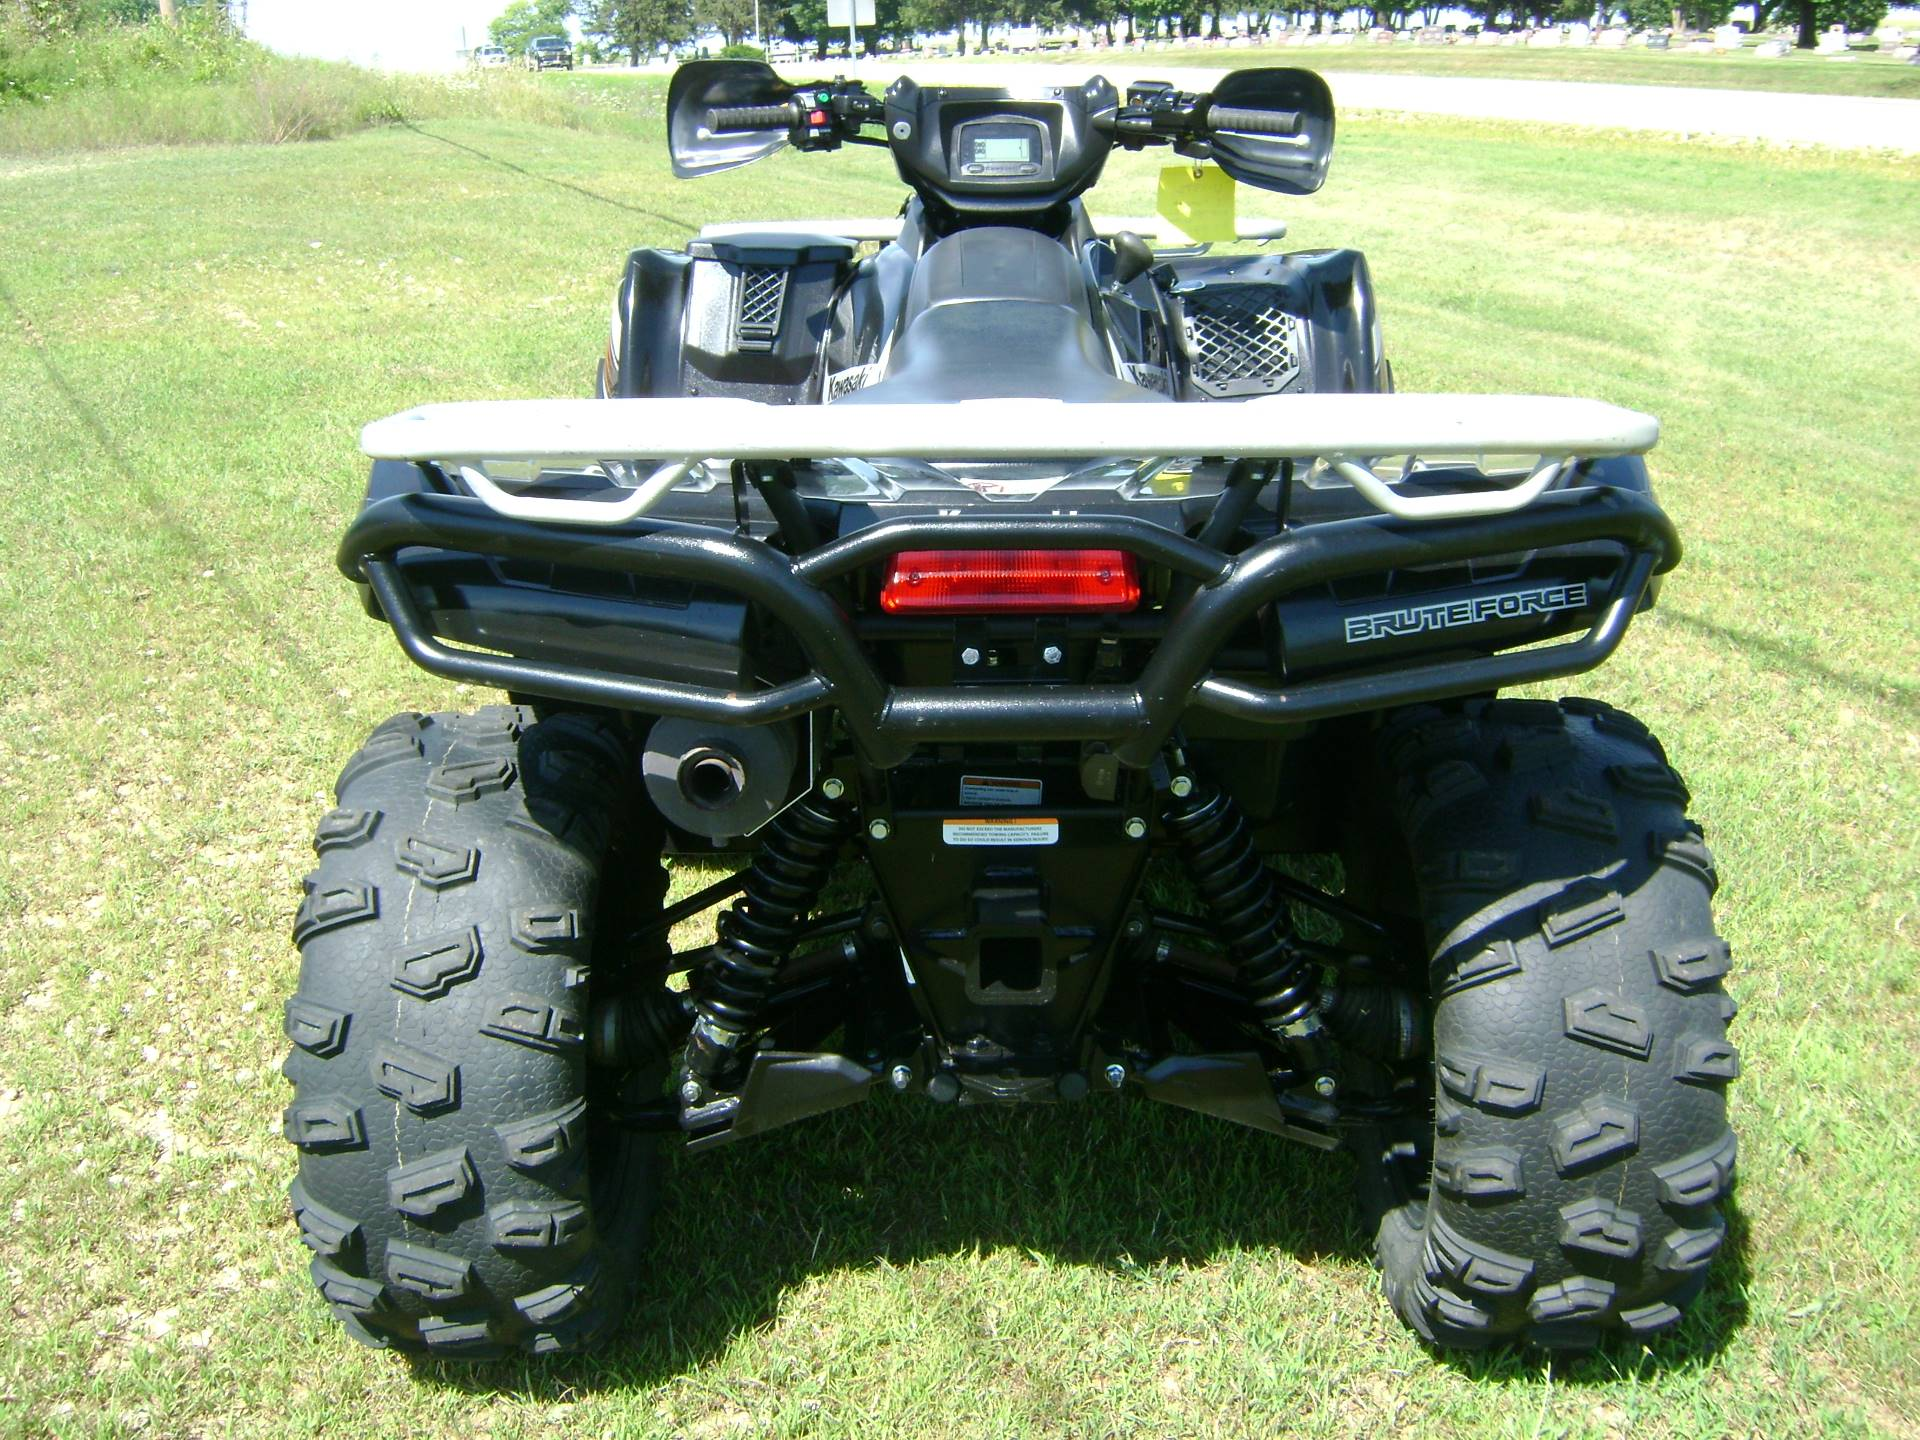 2012 Kawasaki BRUTE FORCE 750 in Freeport, Illinois - Photo 7